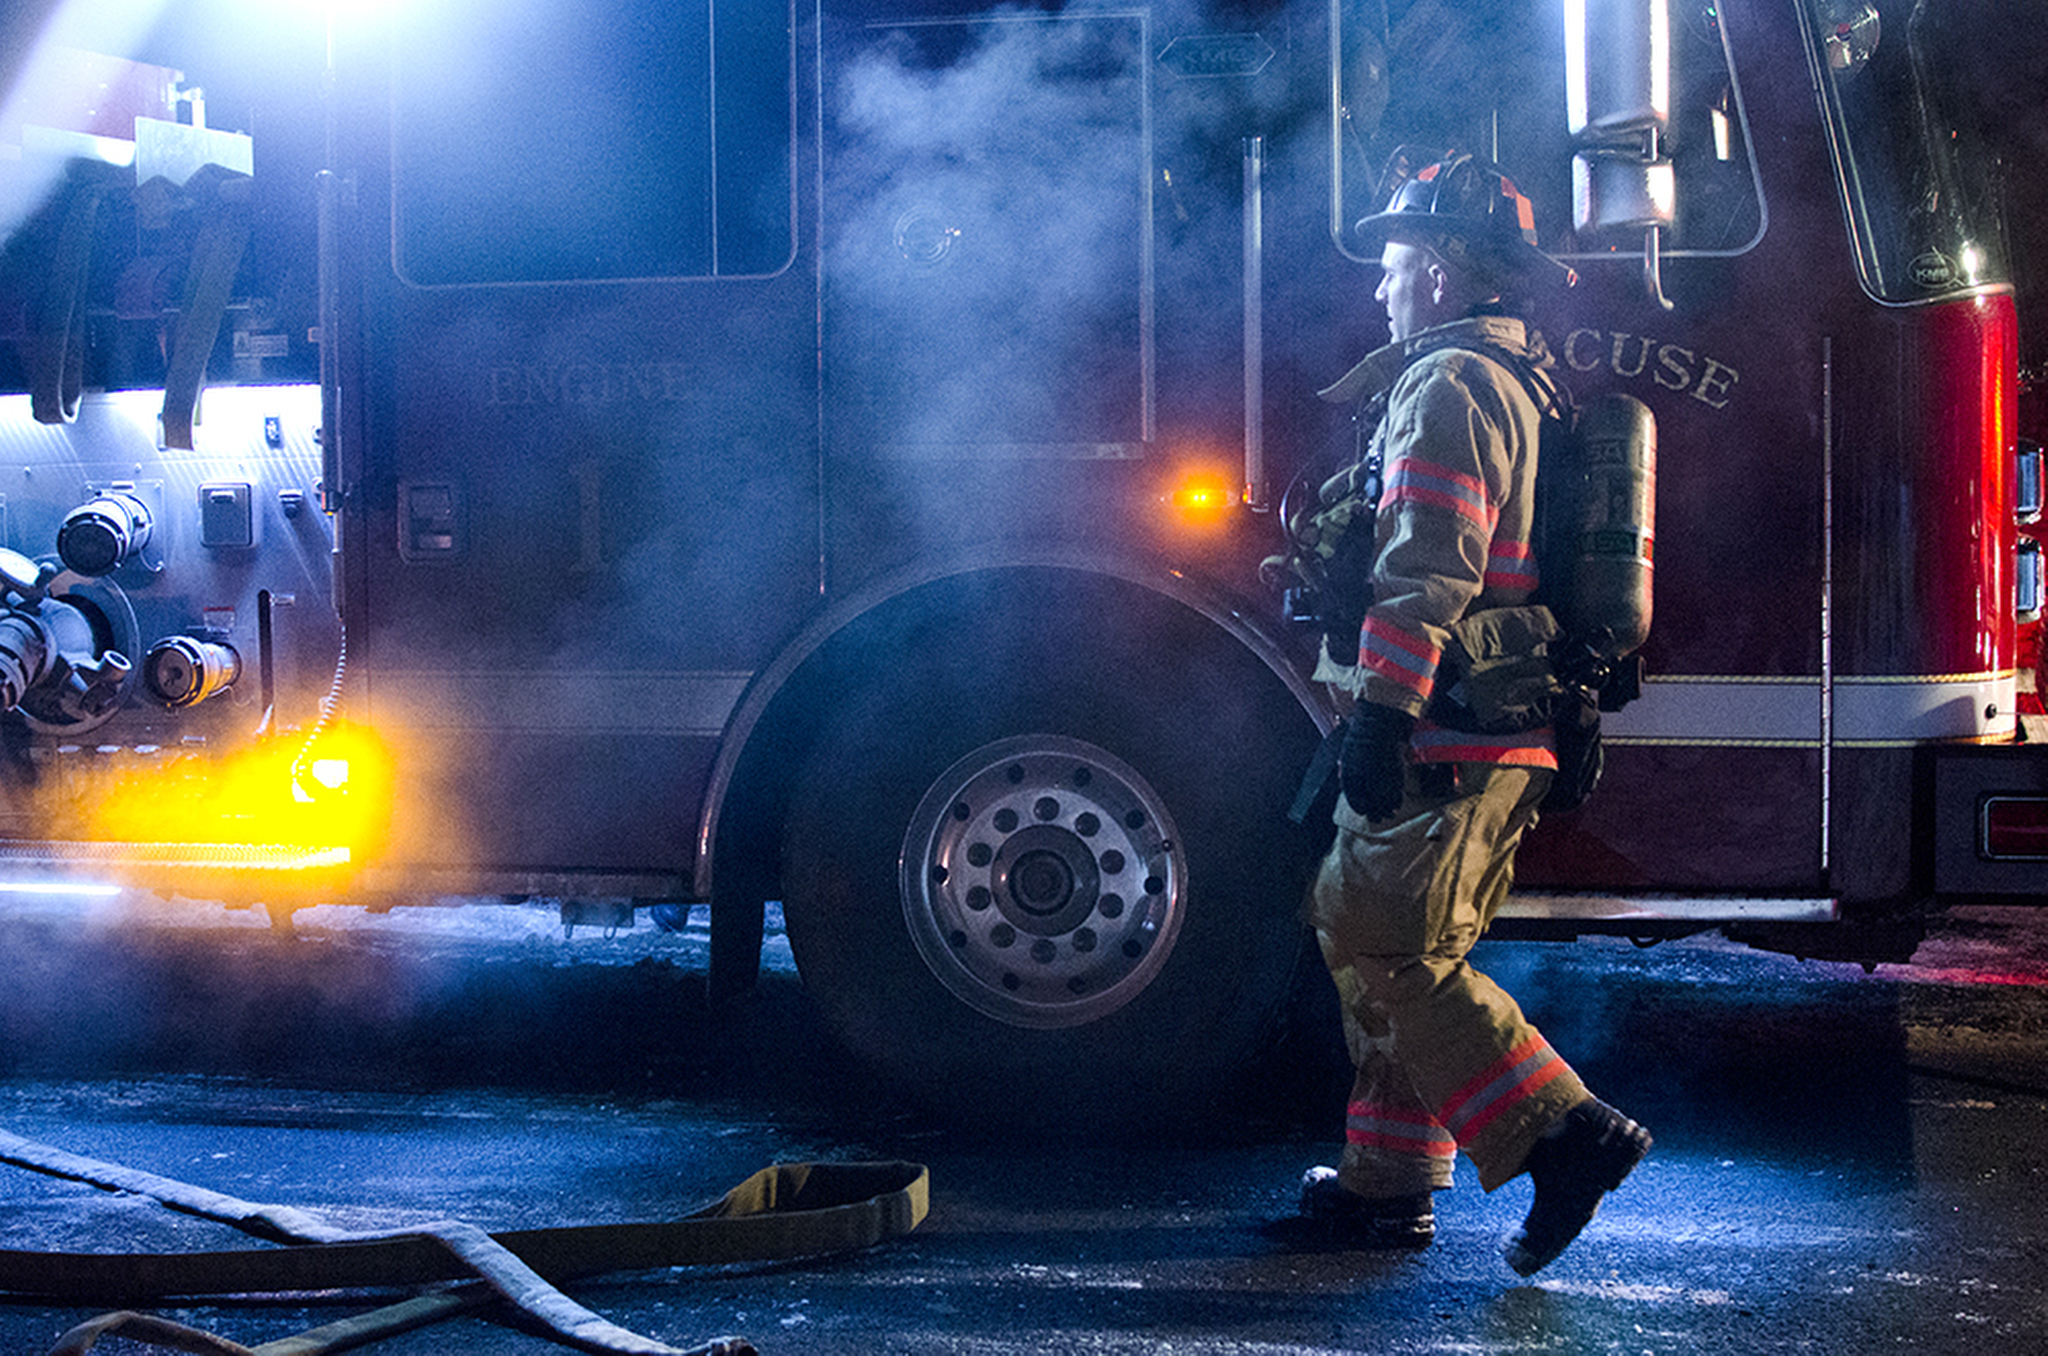 A fire breaks out on the lawn of a Berkeley Dr. resident late Tuesday night in the midst of extreme low temperatures documented at -2° F in Syracuse, NY. Here, a fireman is returning to the truck to coil up hoses and head back to the station.